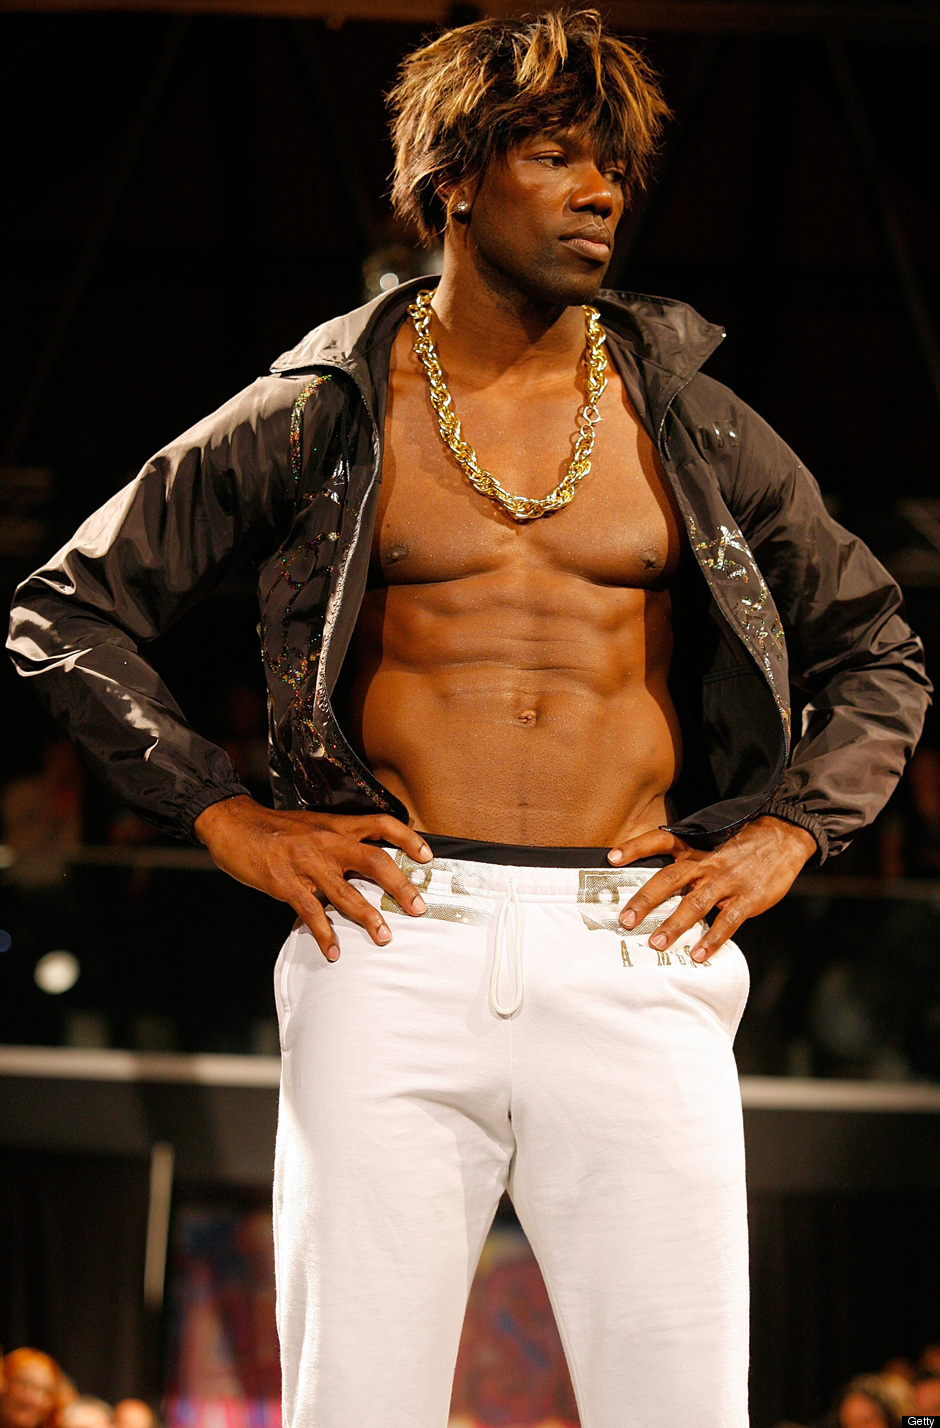 Gay Catwalk Fashion Show Terrell Owens Fashion Show